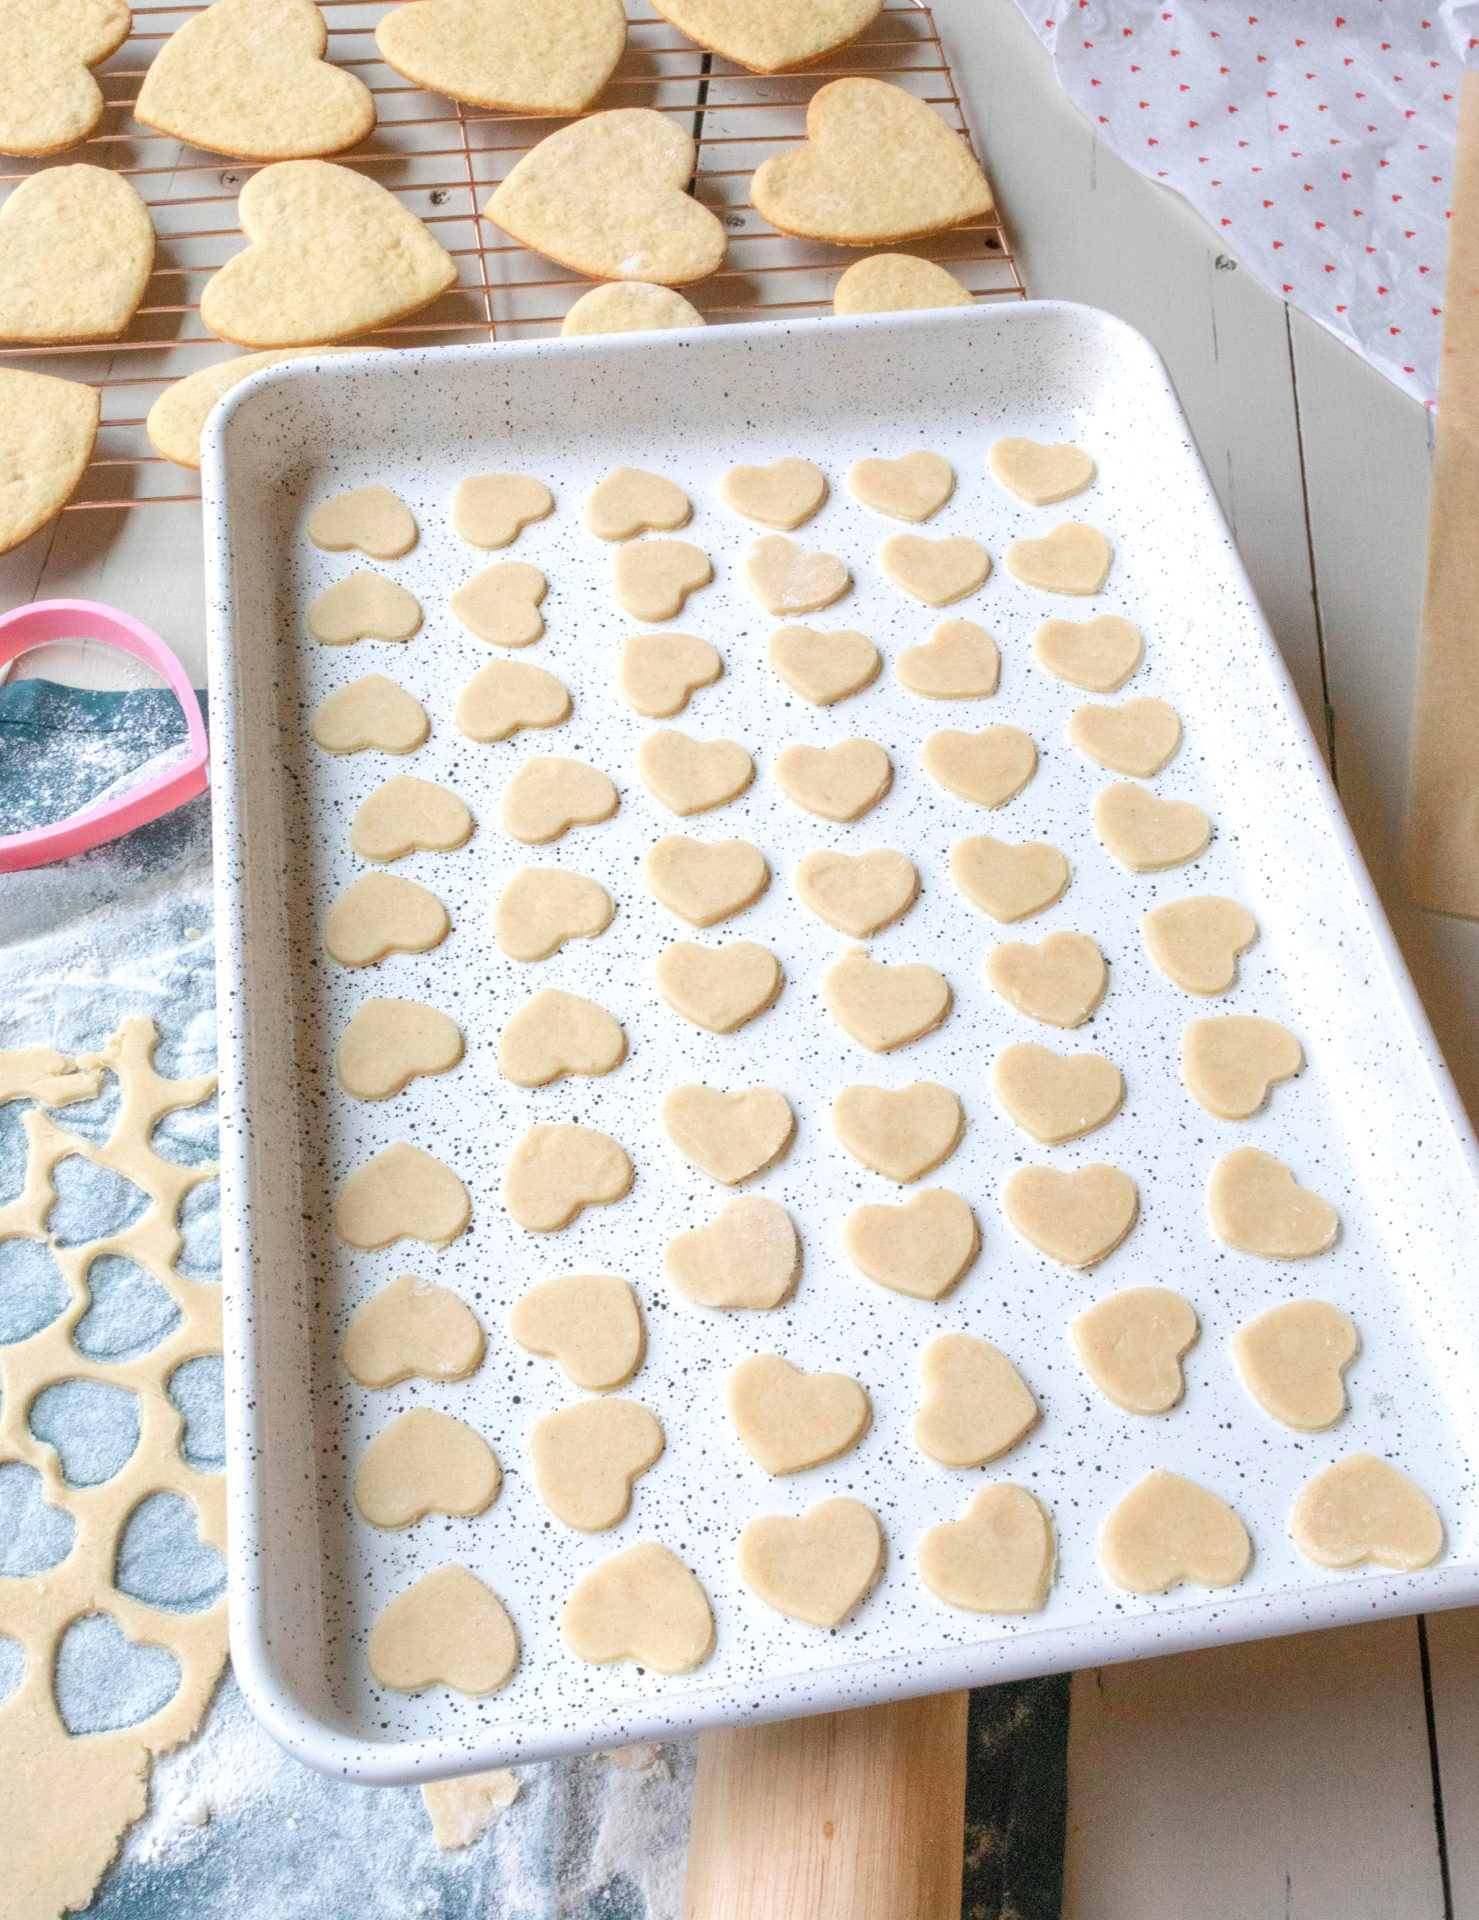 vegan royal icing, dairy free, dairy free sugar cookies, dairy free frosting, vegan and gluten free cookies, frosted sugar cookies, vegan cookies, frosted vegan sugar cookies, frosted gluten free sugar cookies, gluten free baking, recipe, holiday, sweets